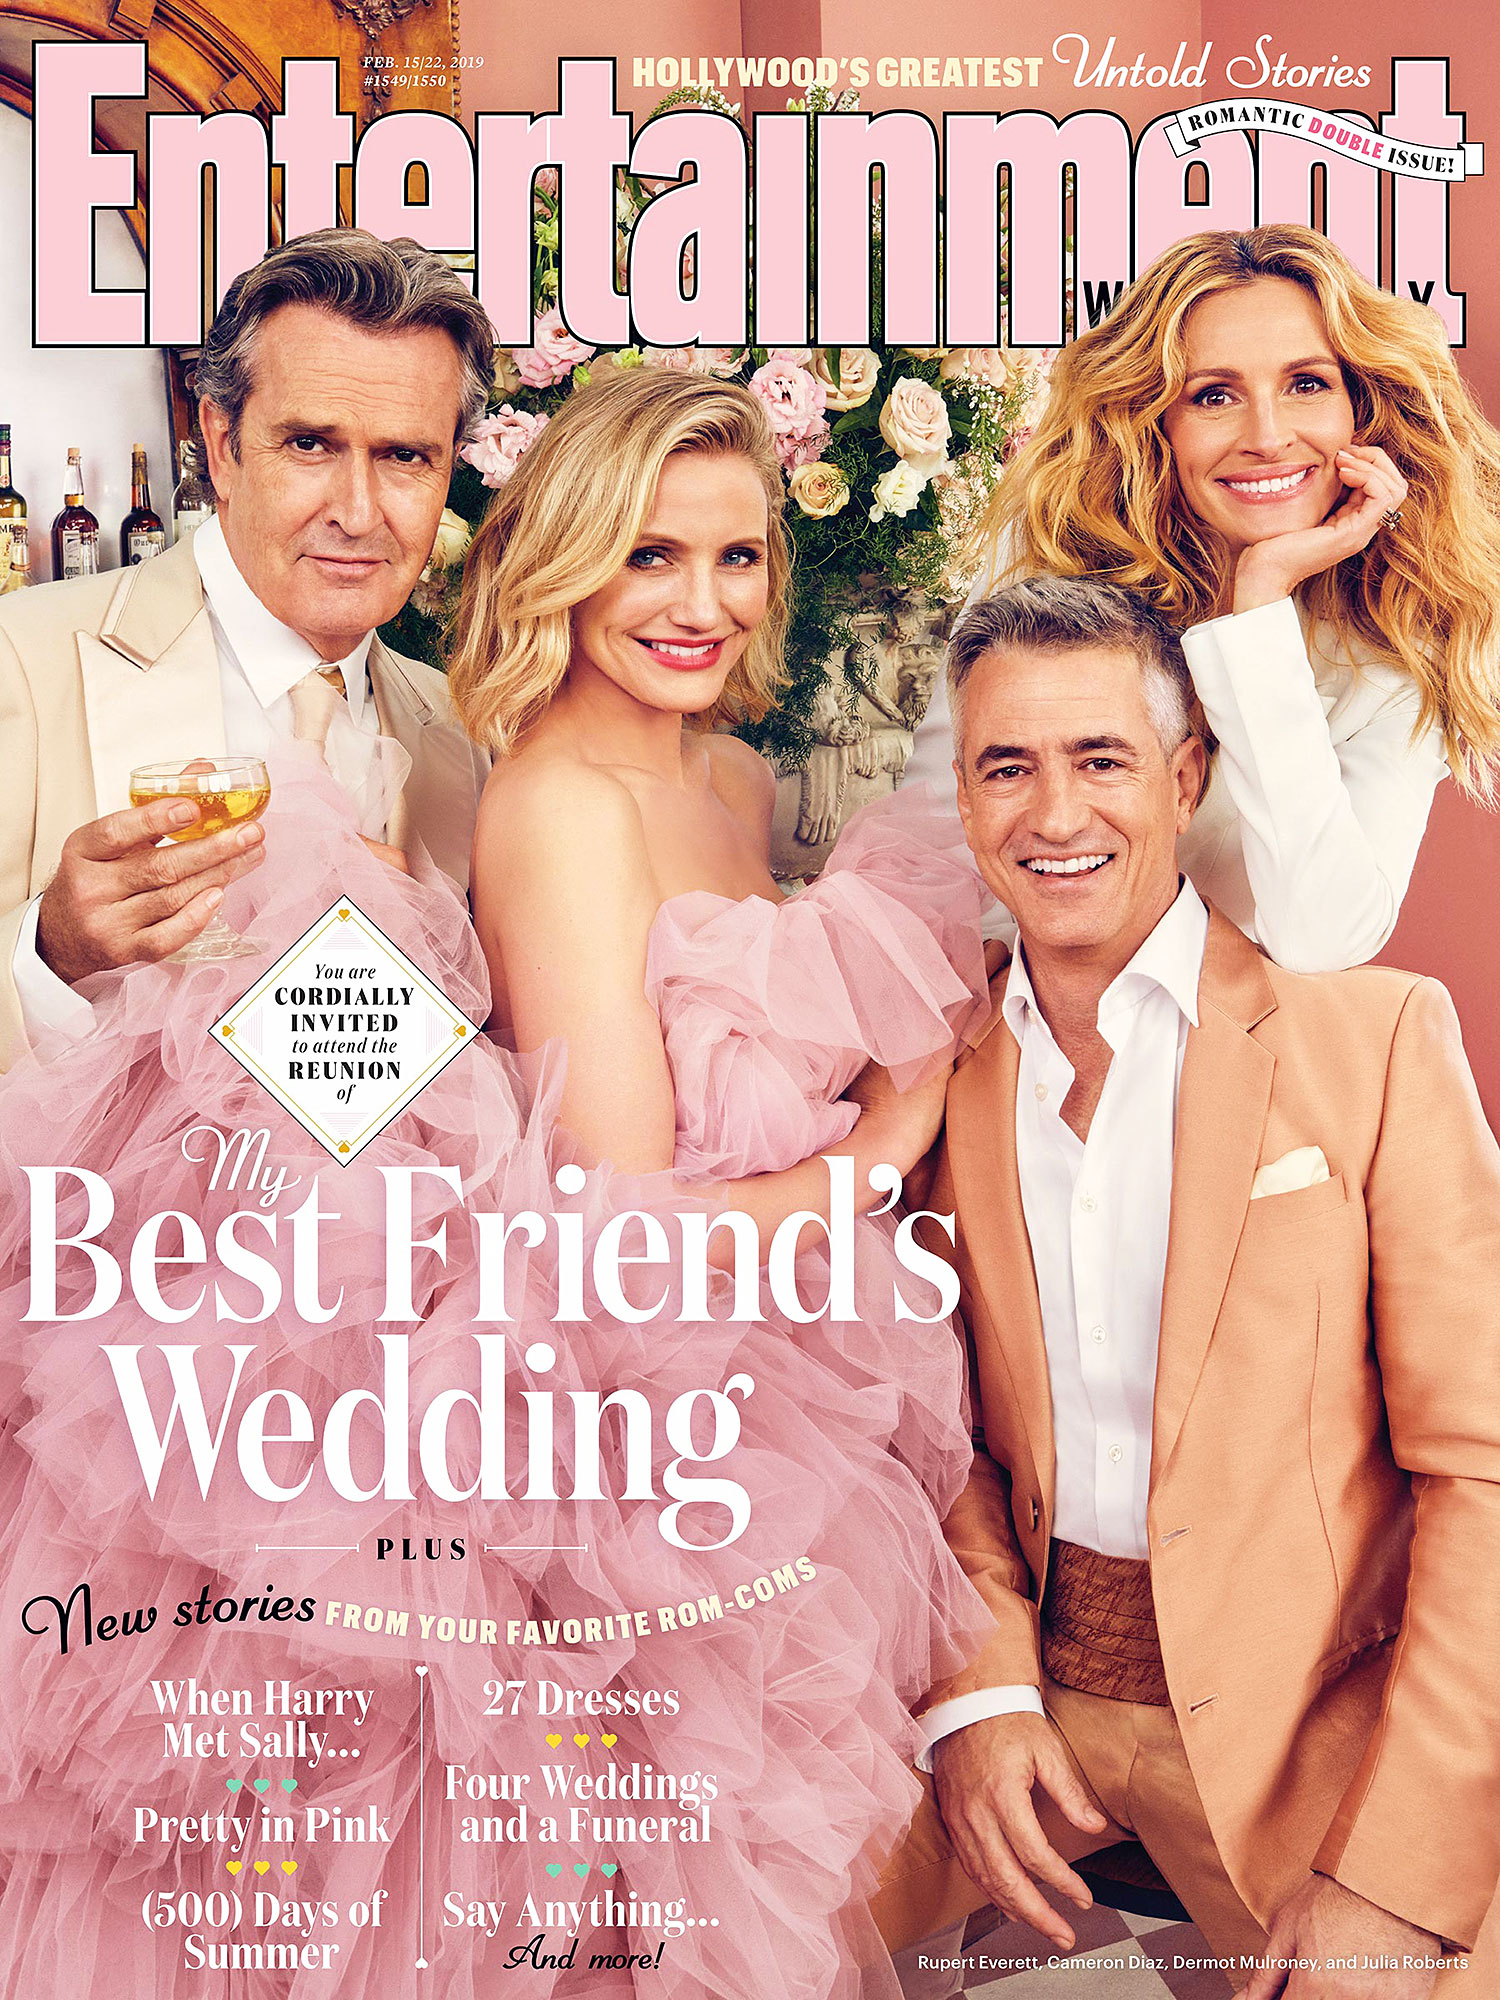 Rupert Everett Cameron Diaz Dermot Mulroney Julia Roberts My Best Friend's Wedding Reunion Entertainment Weekly Cover - Rupert Everett, Cameron Diaz, Dermot Mulroney and Julia Roberts on the cover of Entertainment Weekly.